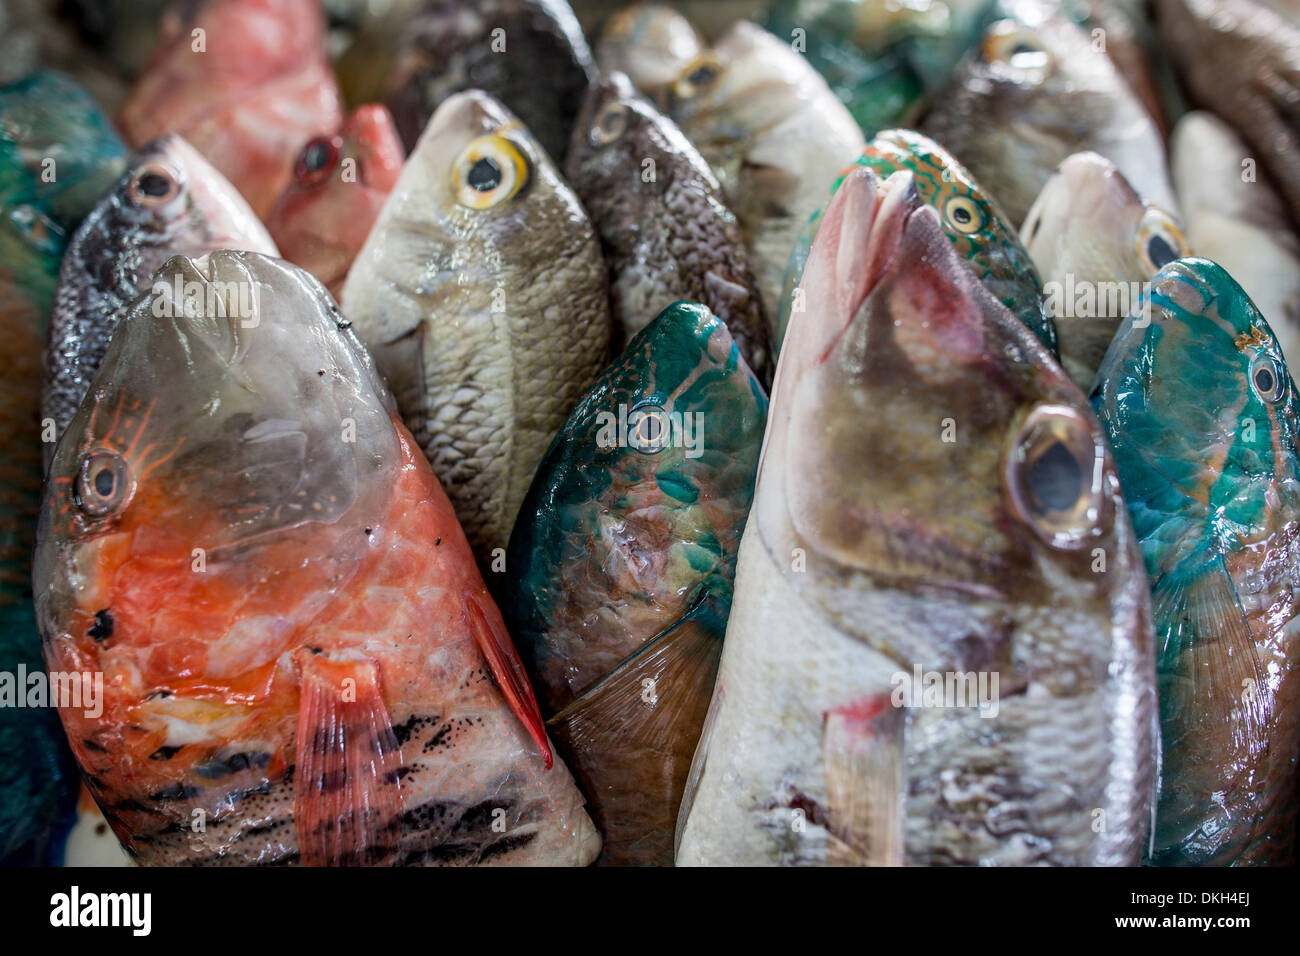 A collection of fish for sale in Kudat fish market, Sabah, Malaysian Borneo, Malaysia, Southeast Asia, Asia - Stock Image